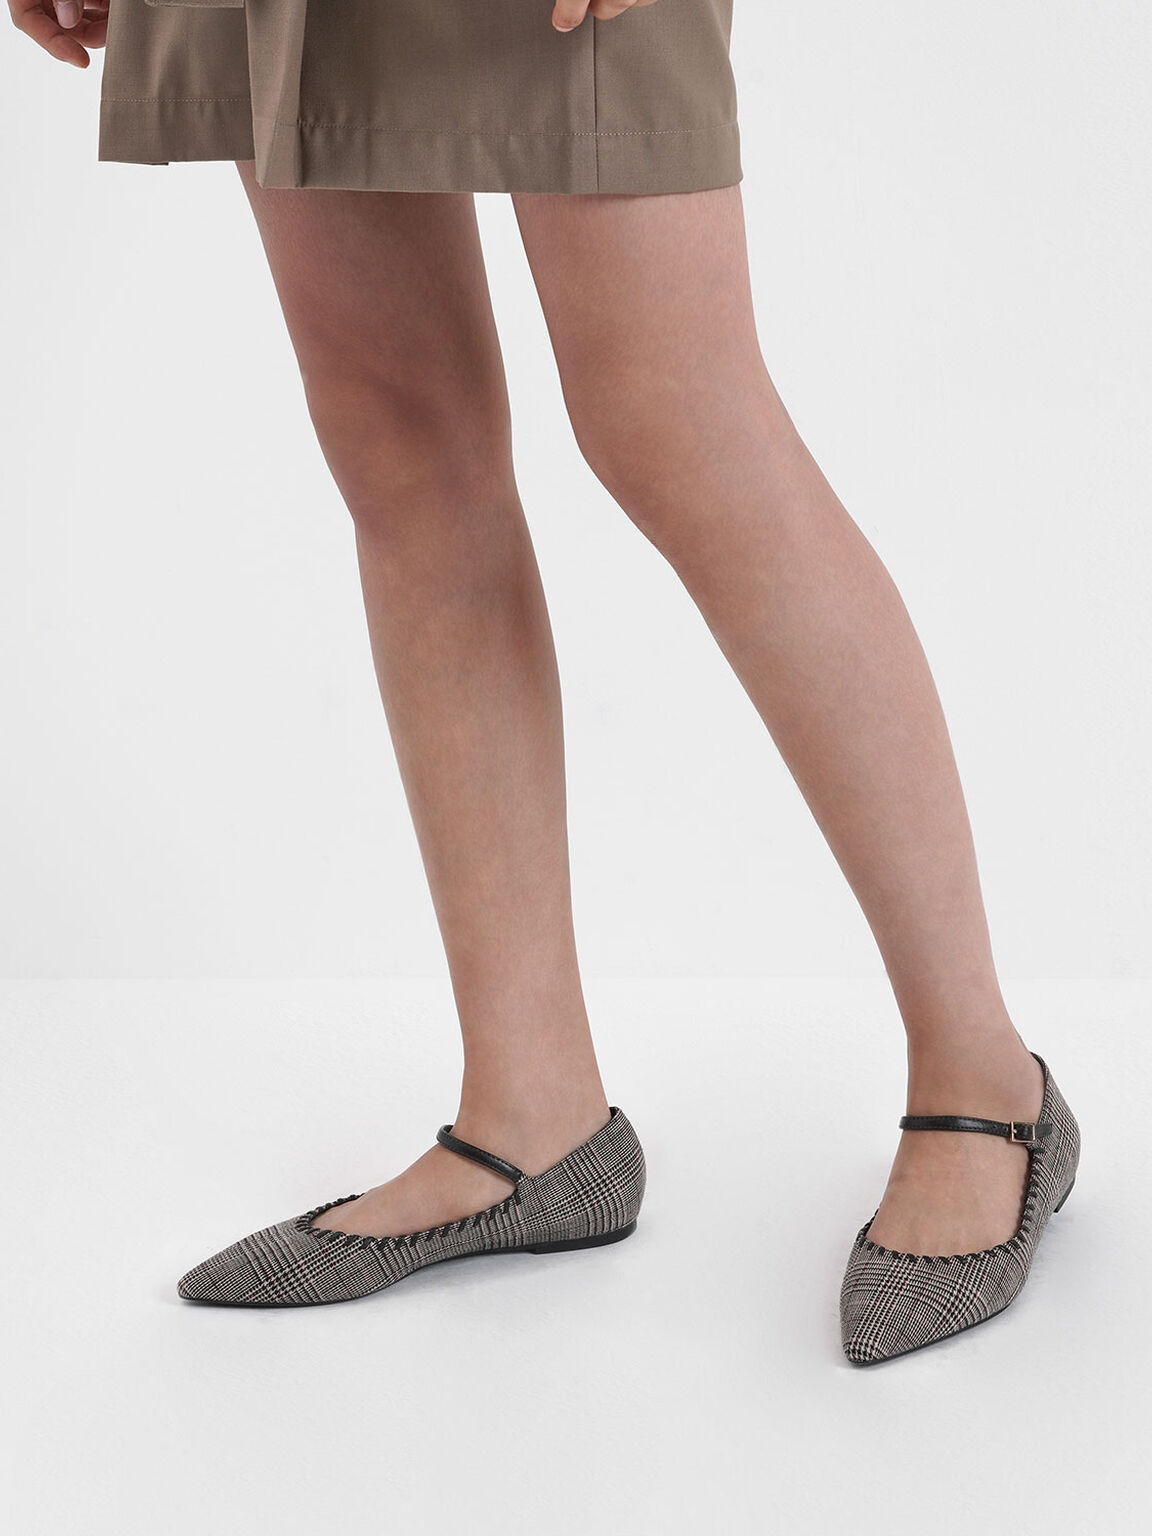 Houndstooth Print Whipstitch Trim Mary Jane Flats, Multi, hi-res